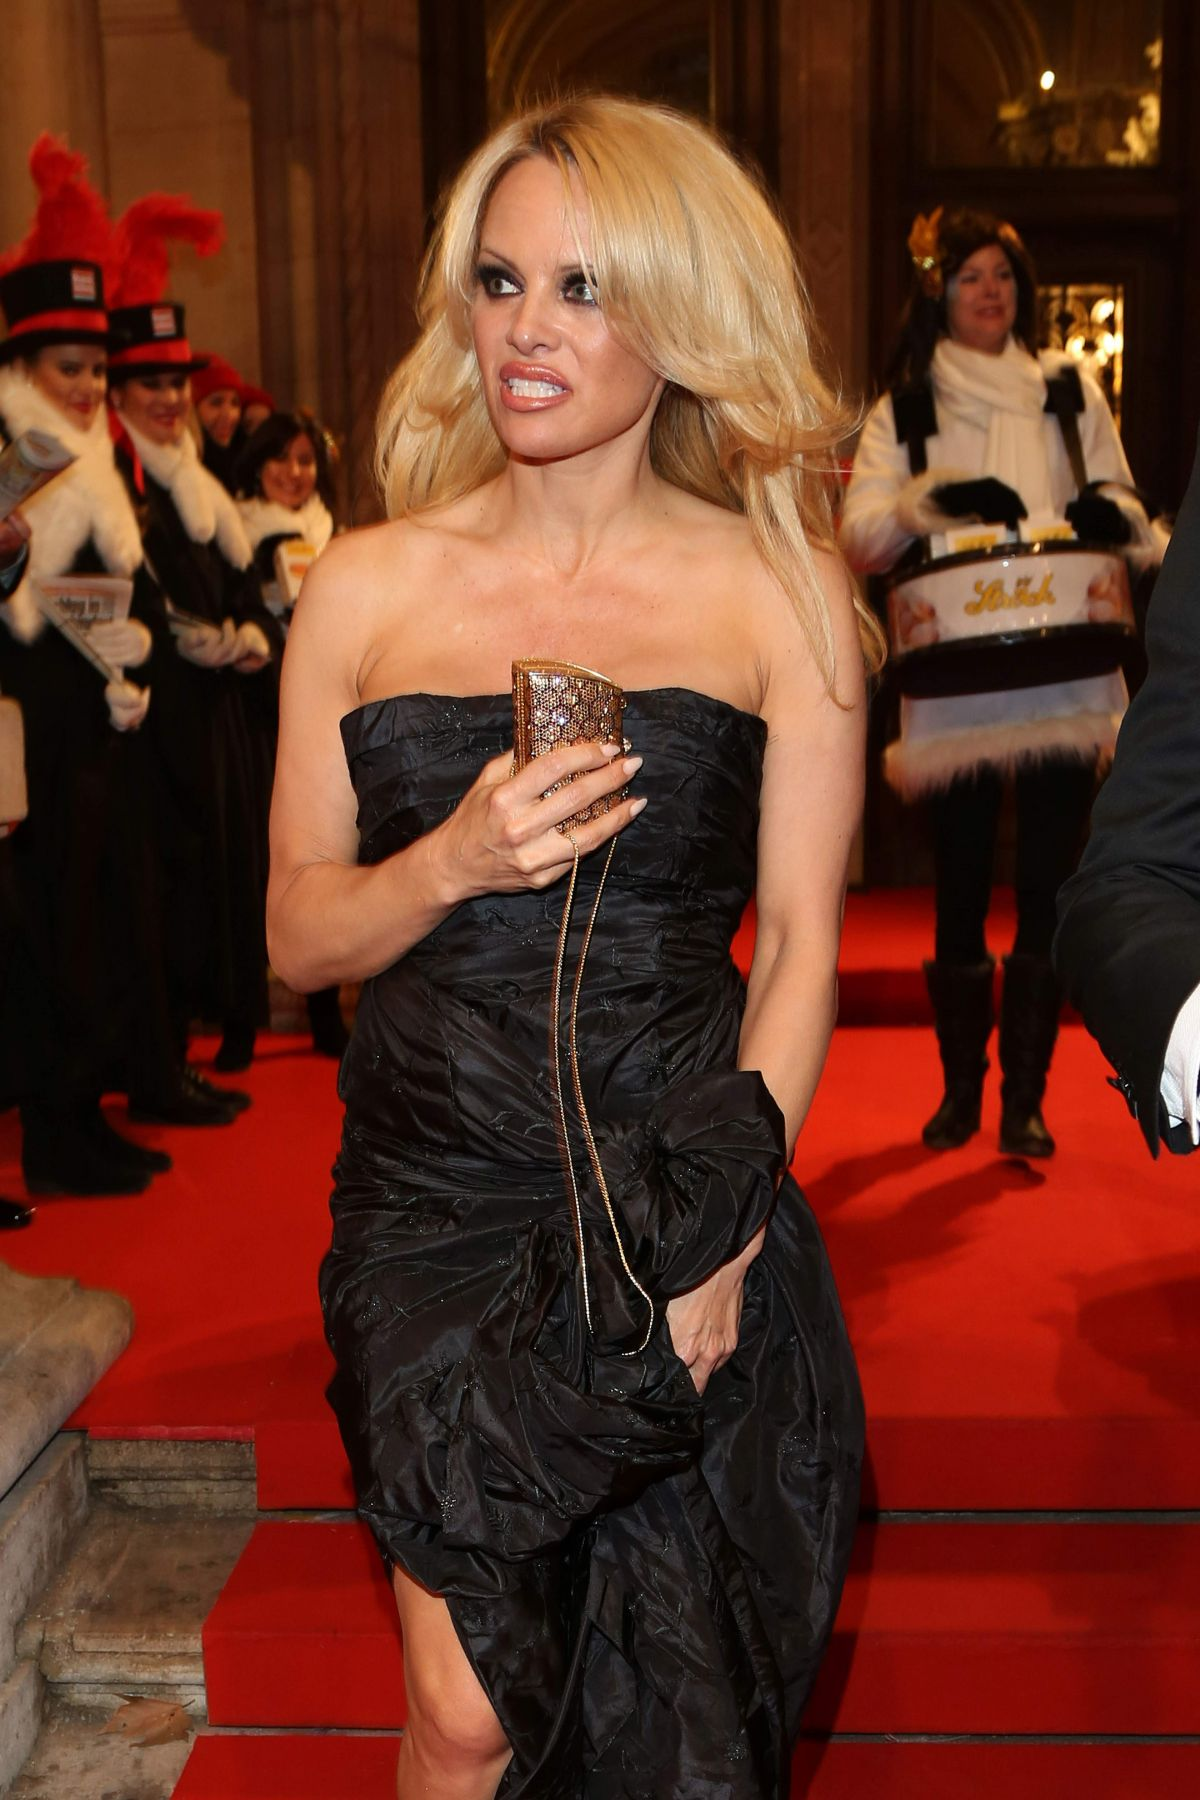 PAMELA ANDERSON Leaves Opera Ball Vienna 2016 at The Grand Hotel 02/04 ... Pamela Anderson